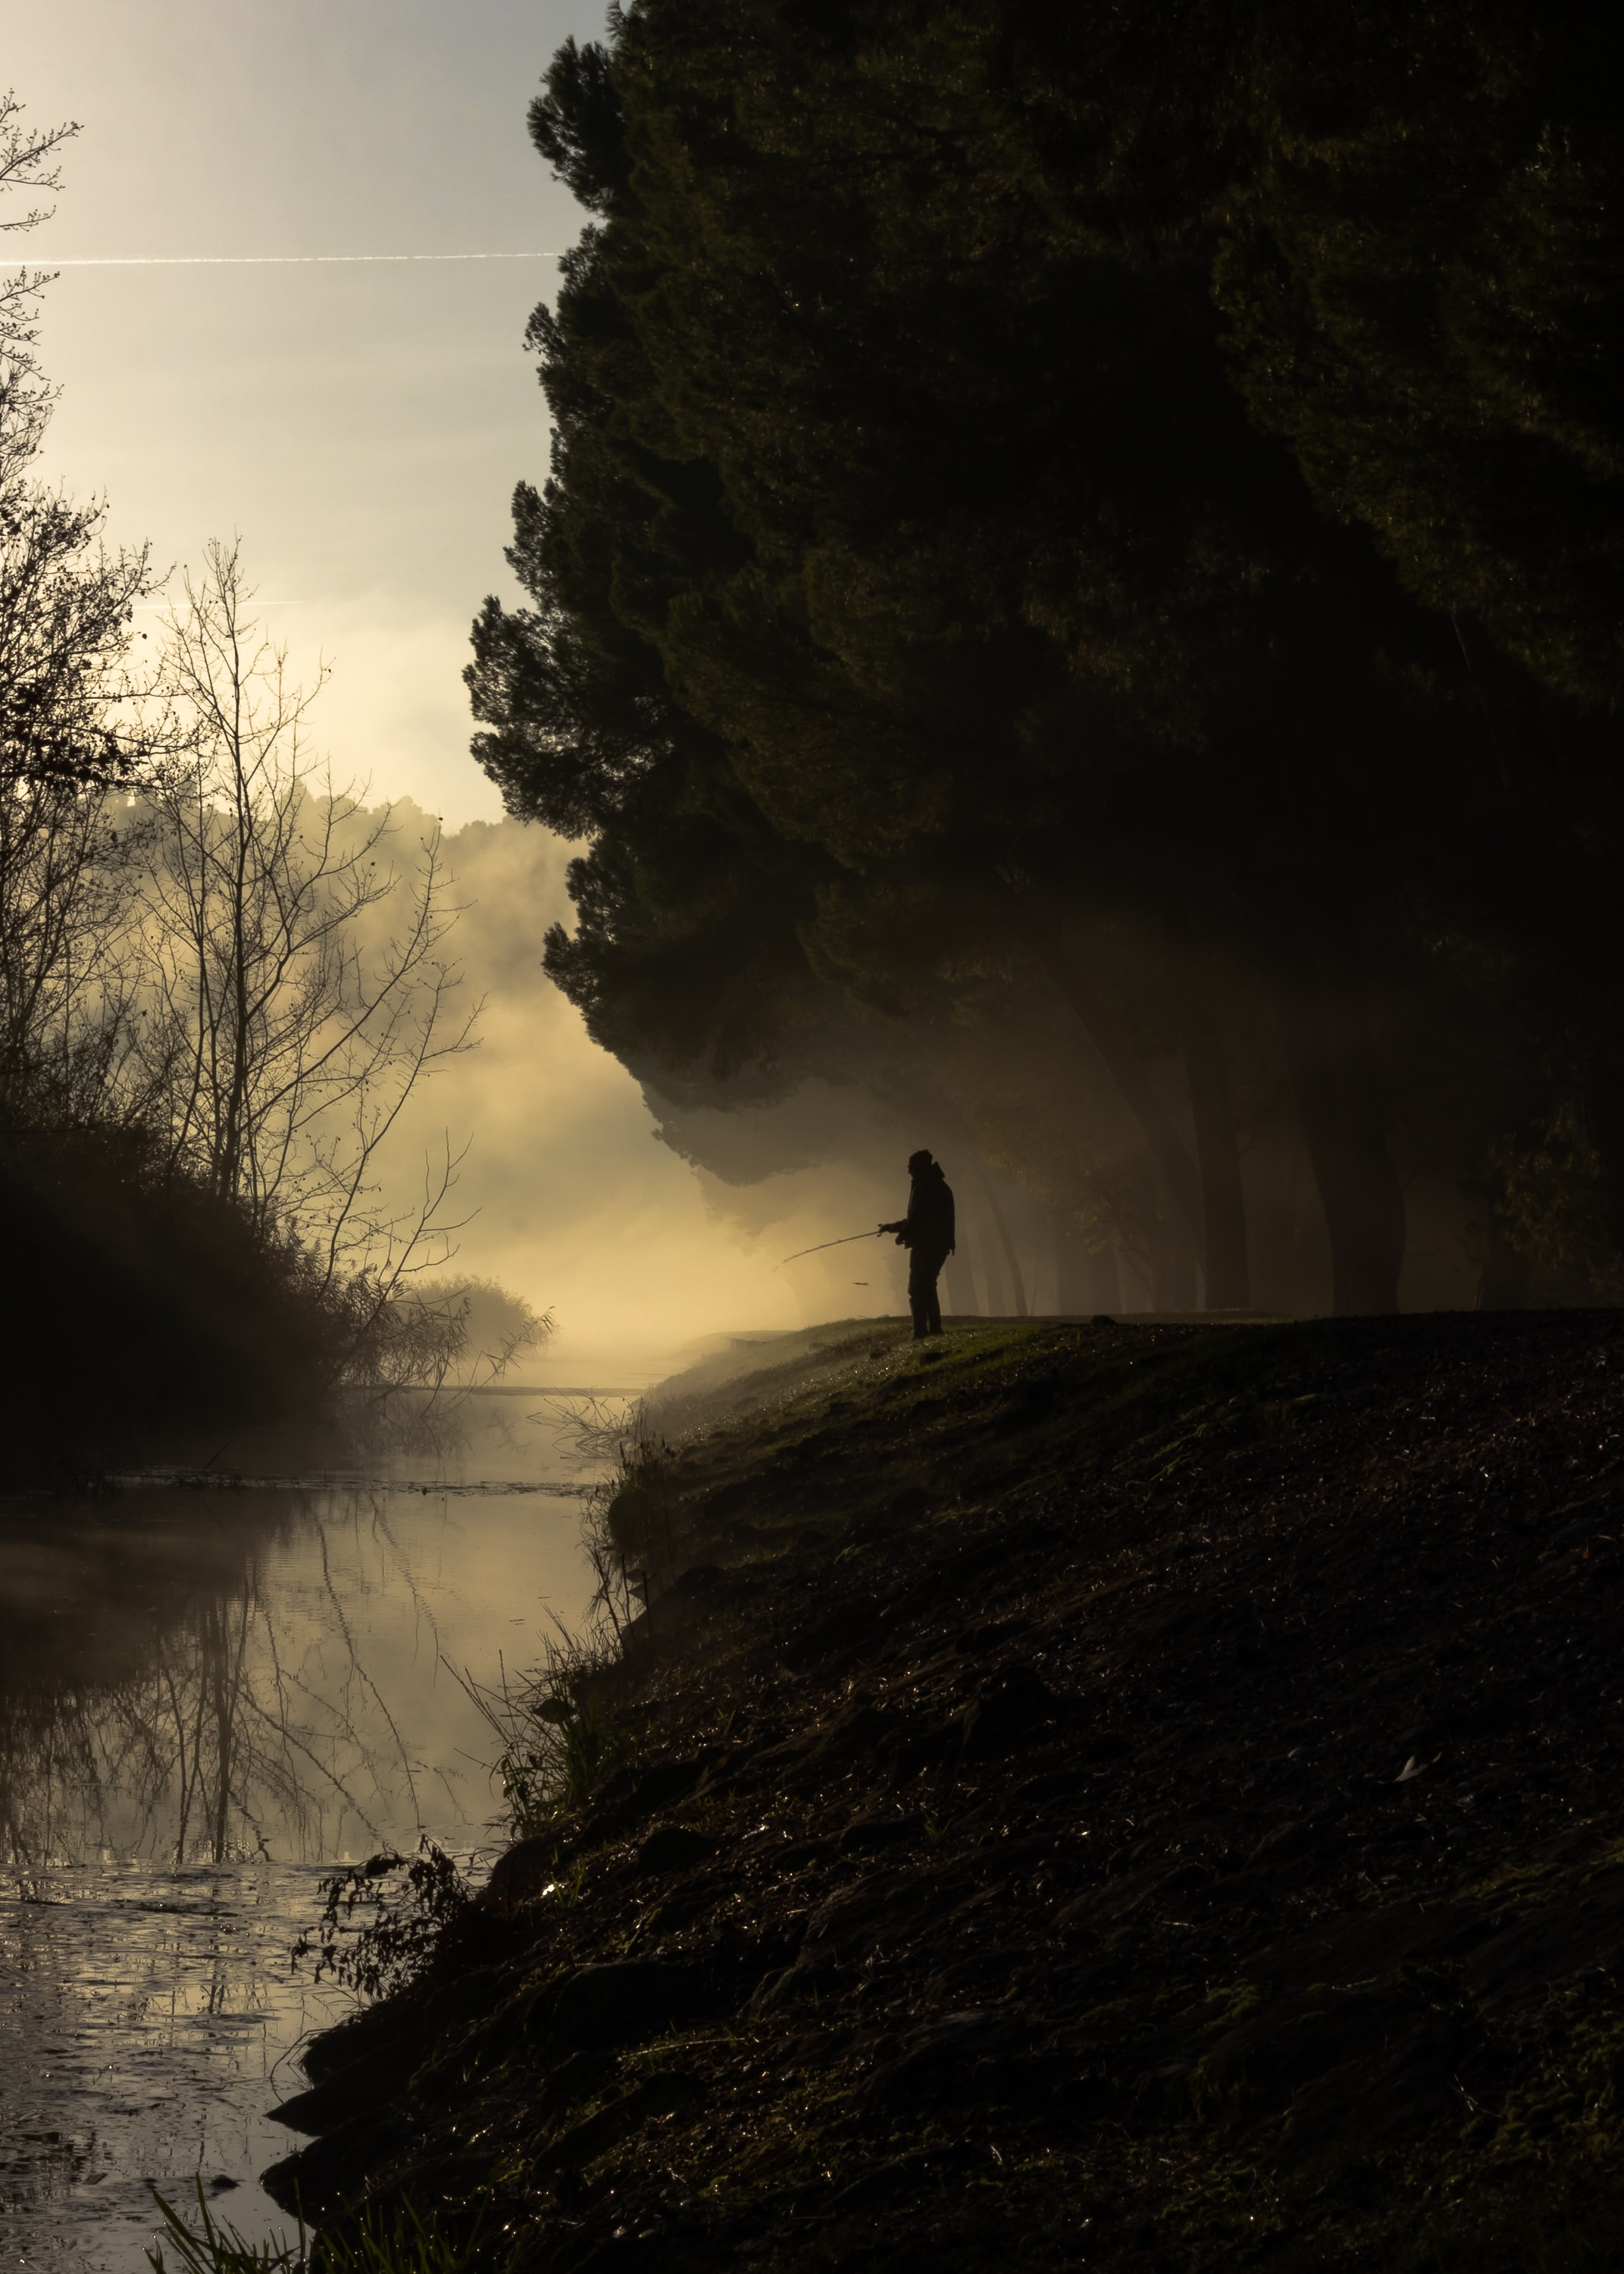 silhouette of man fishing near river